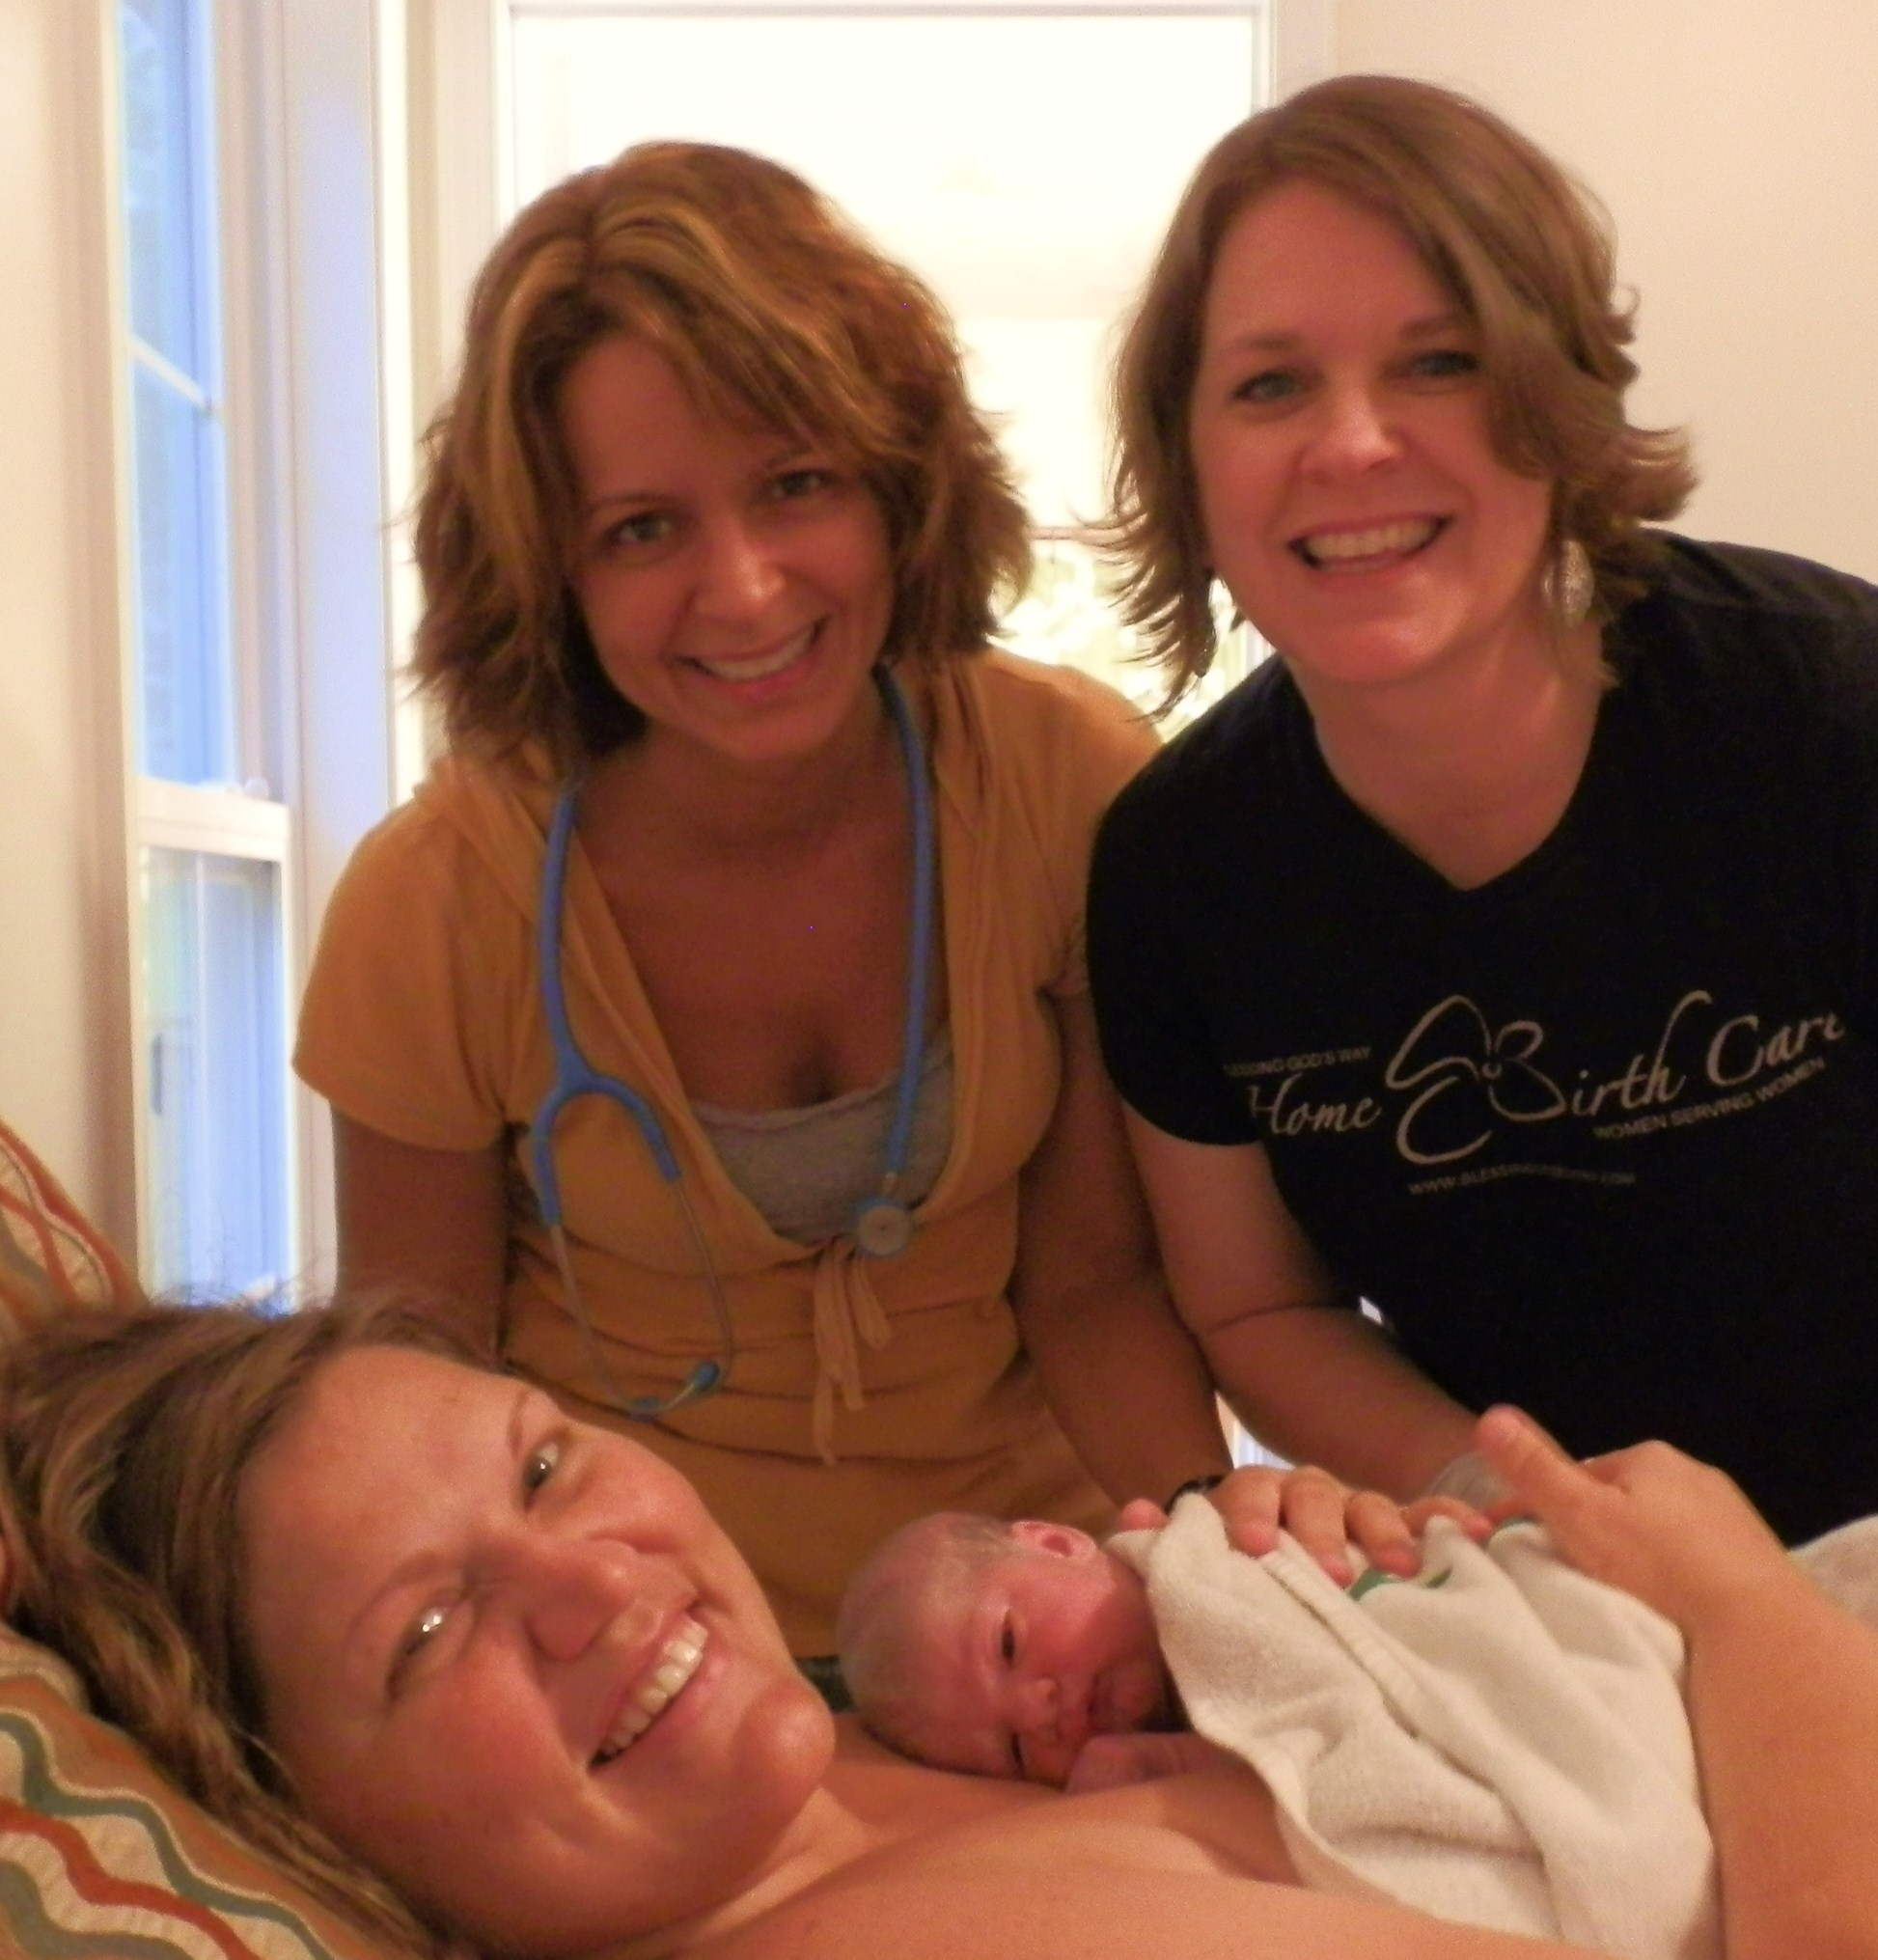 Birth Story… Told by Midwife's Assistant: